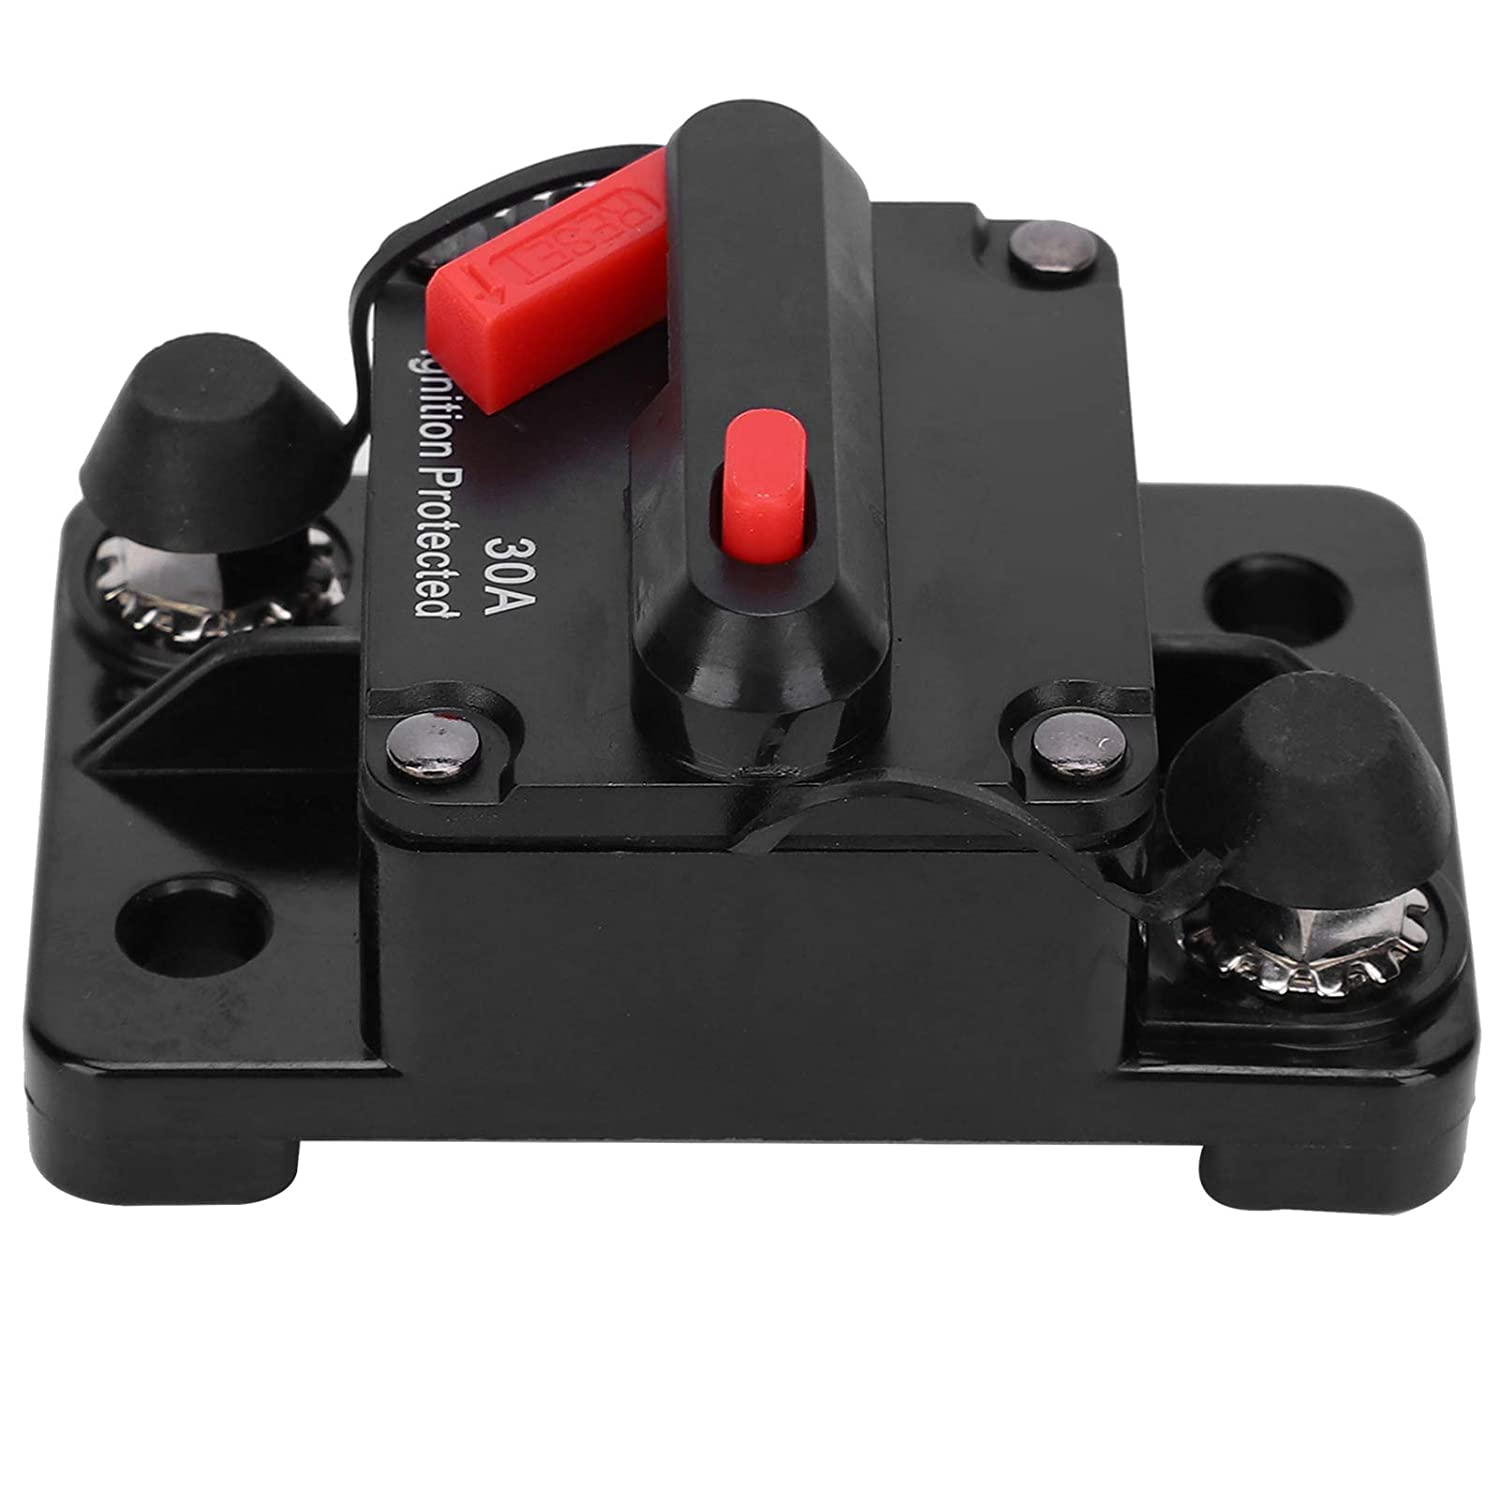 National products Ladieshow Circuit Max 86% OFF Breaker Auto Reset Copper Waterpro Holder Fuse